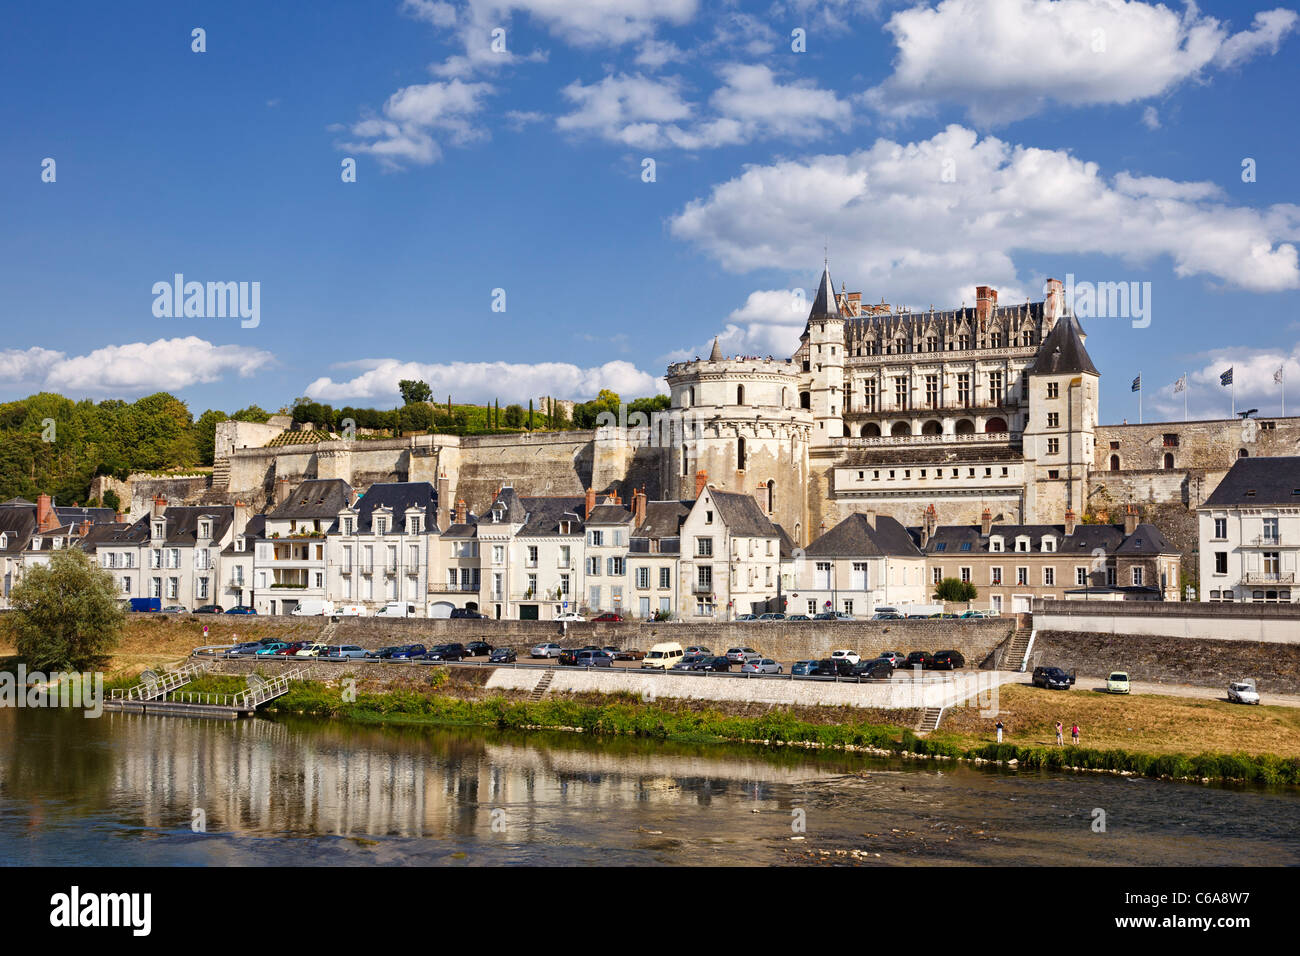 amboise chateau and river loire indre et loire france europe stock photo royalty free image. Black Bedroom Furniture Sets. Home Design Ideas